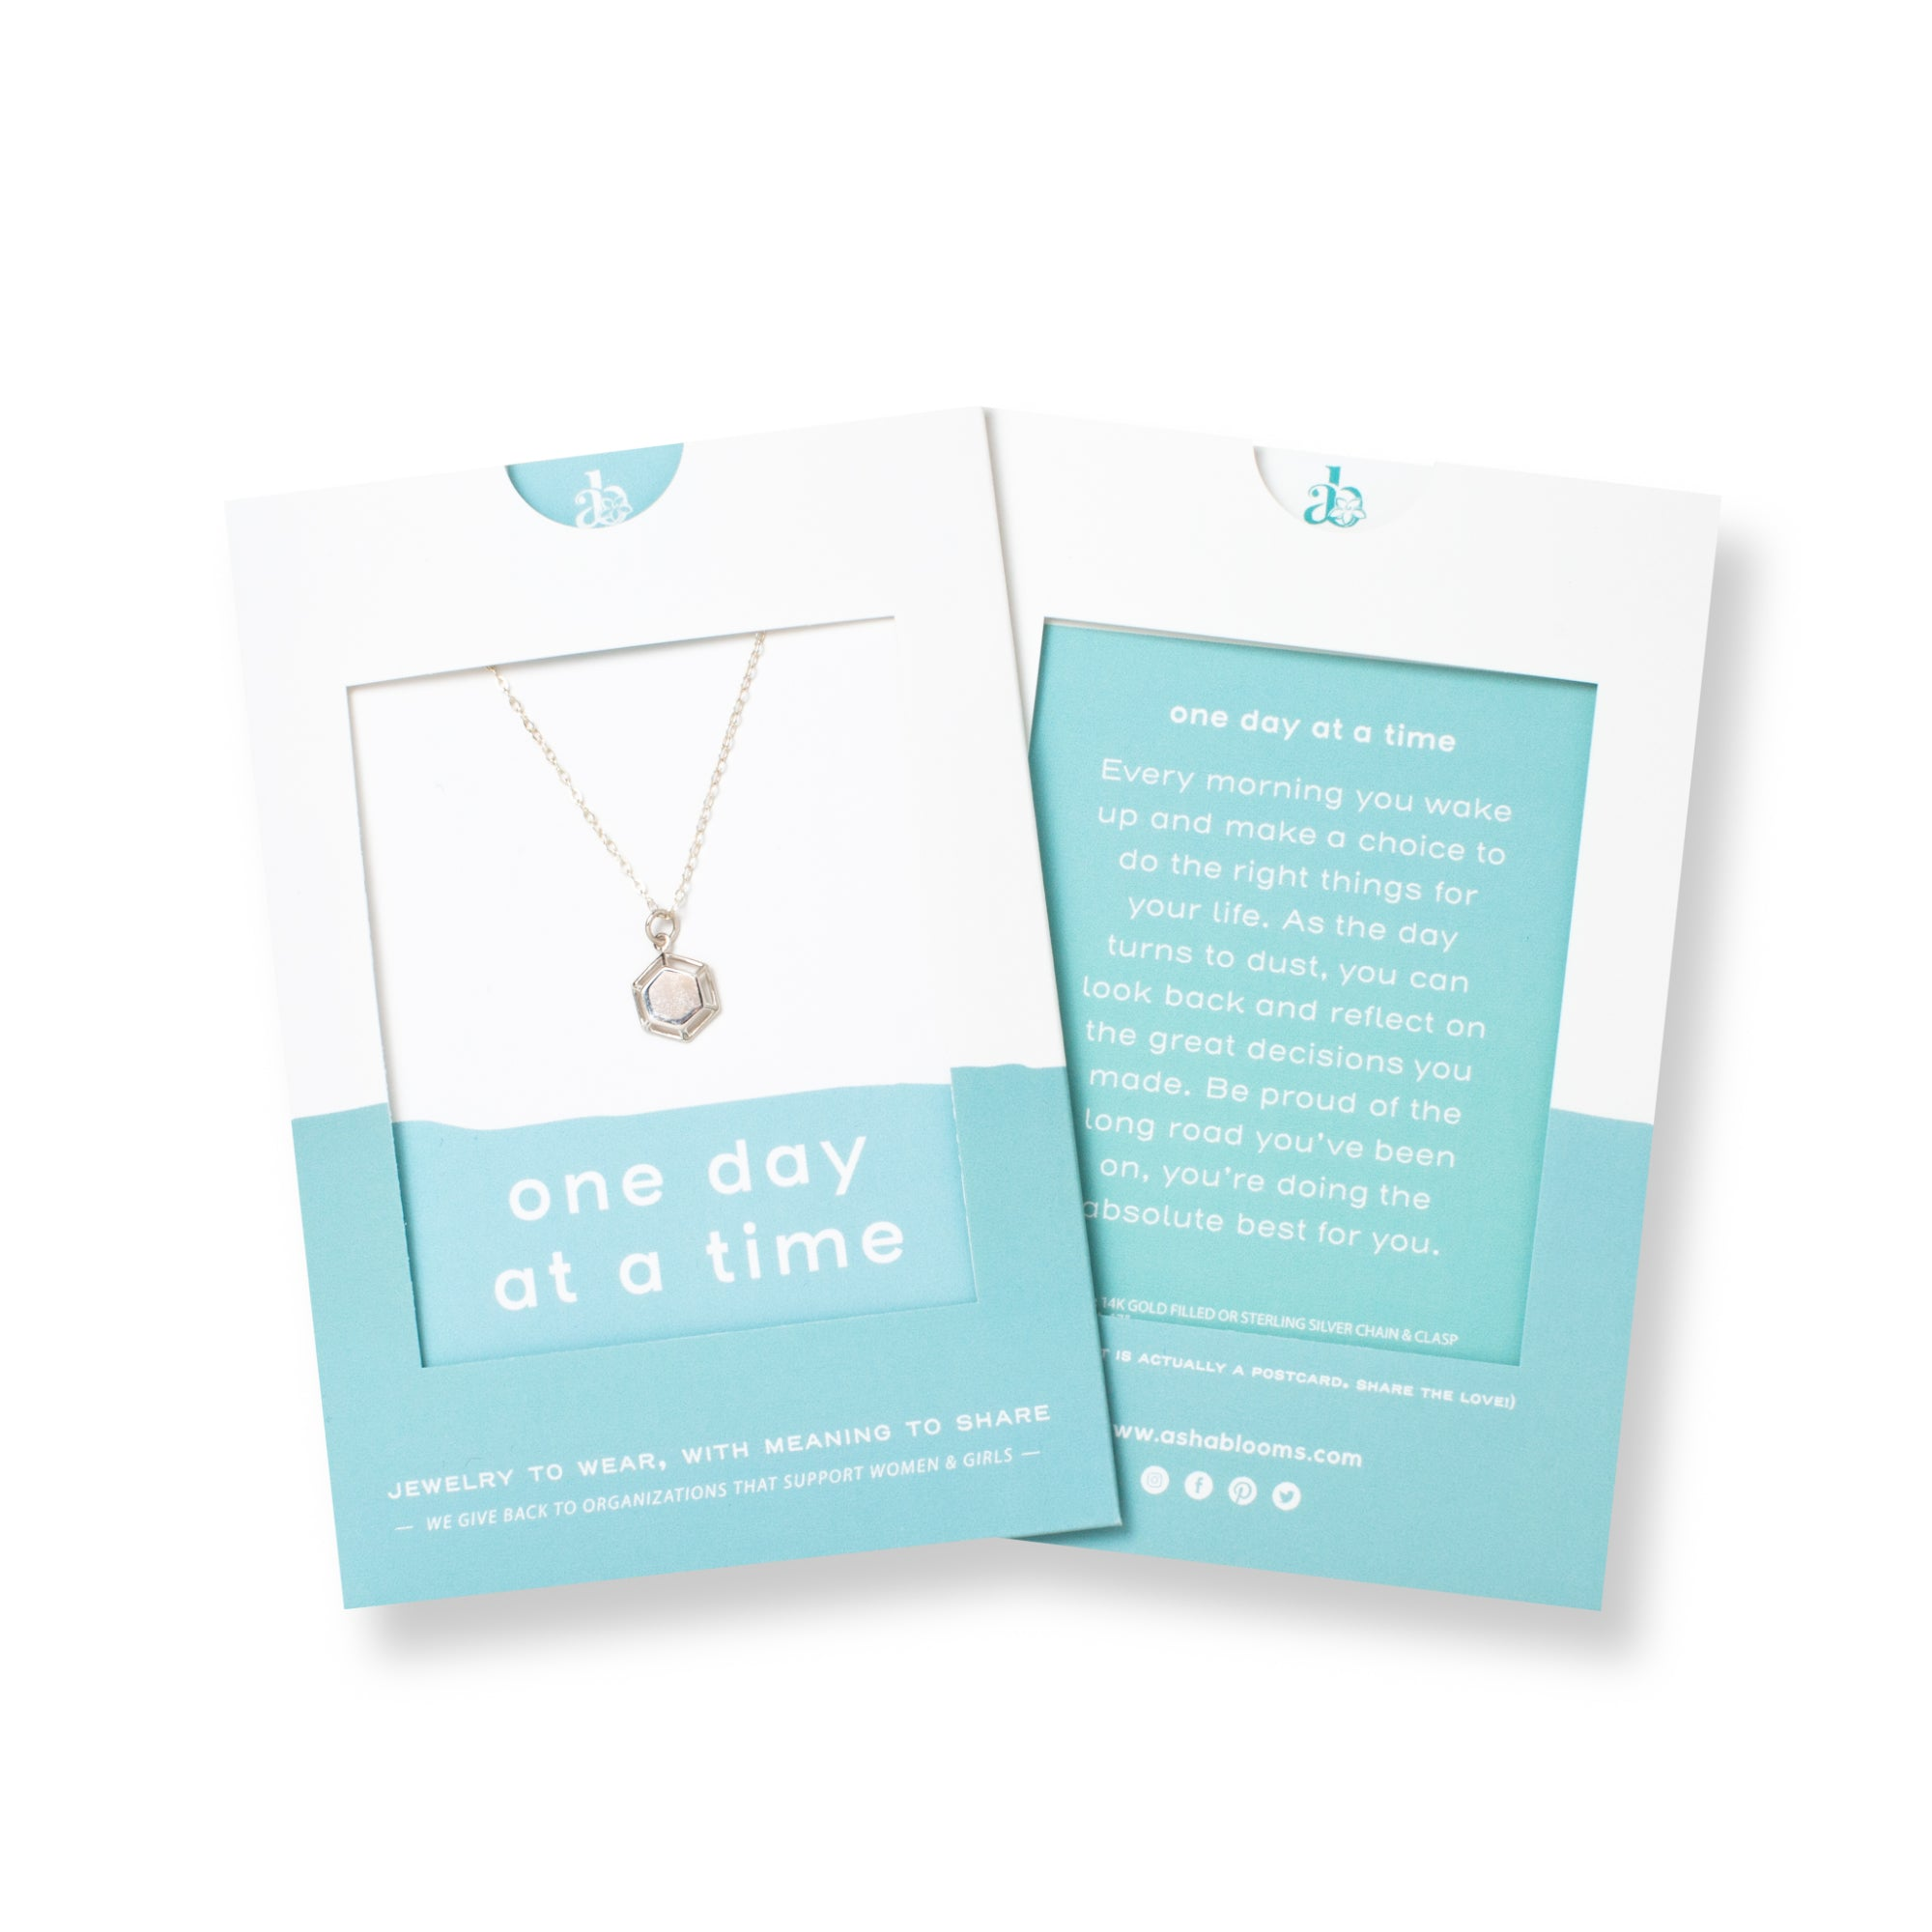 Silver Hexagon Pendant Necklace 'One Day at a Time' in Blue Gift Message Sleeve Packaging Photo by Asha Blooms